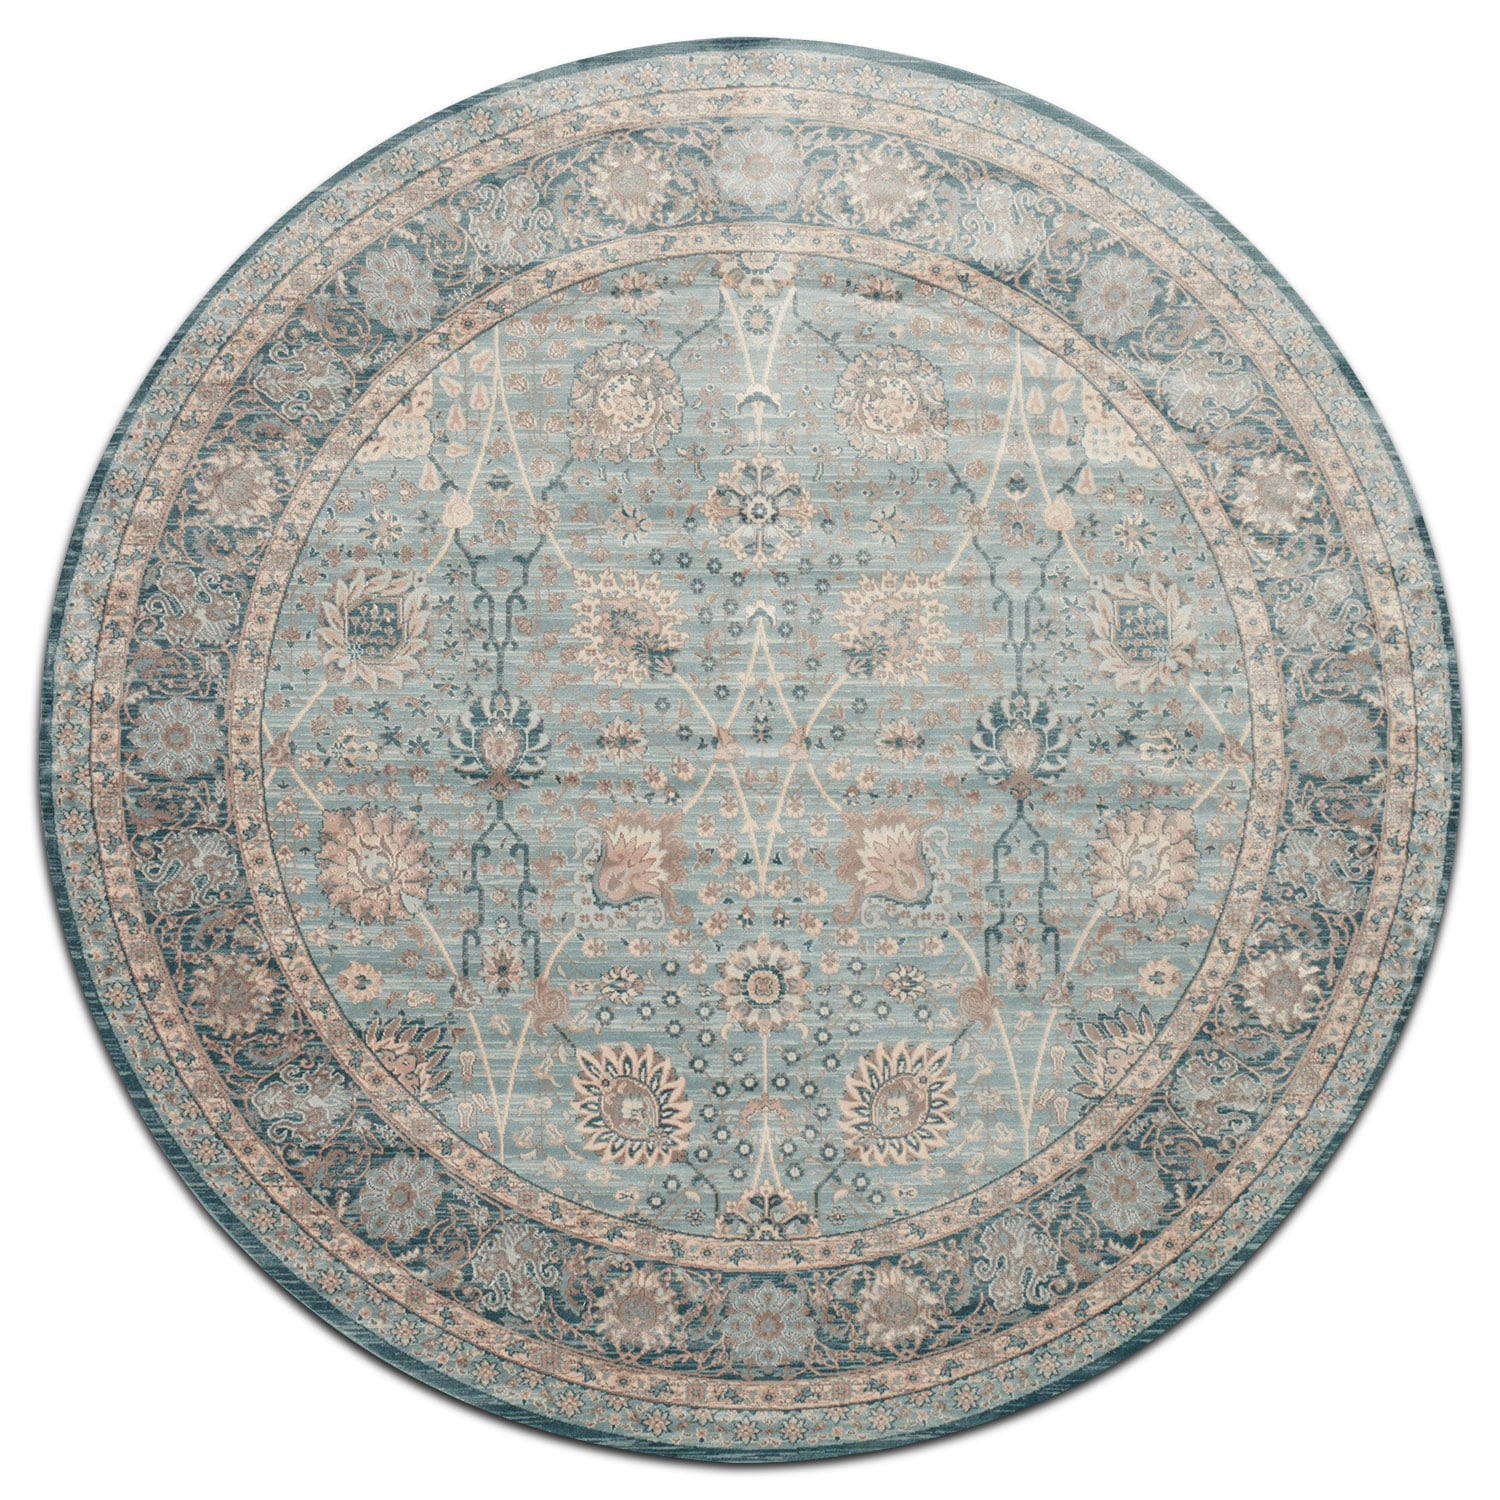 Rugs - Ella Rose 9' Round Rug - Light and Dark Blue